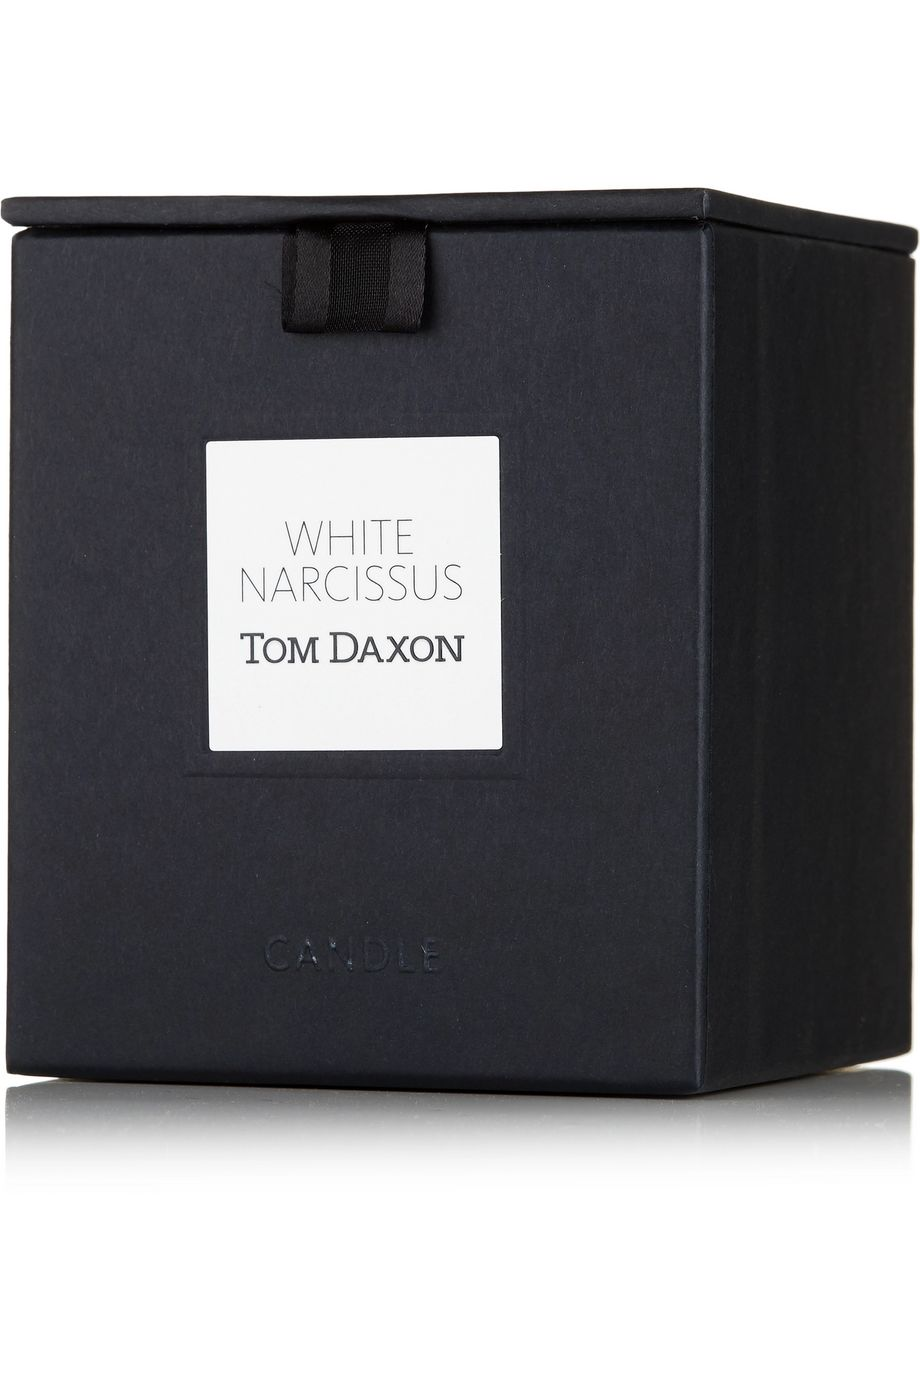 Tom Daxon White Narcissus scented candle, 190g